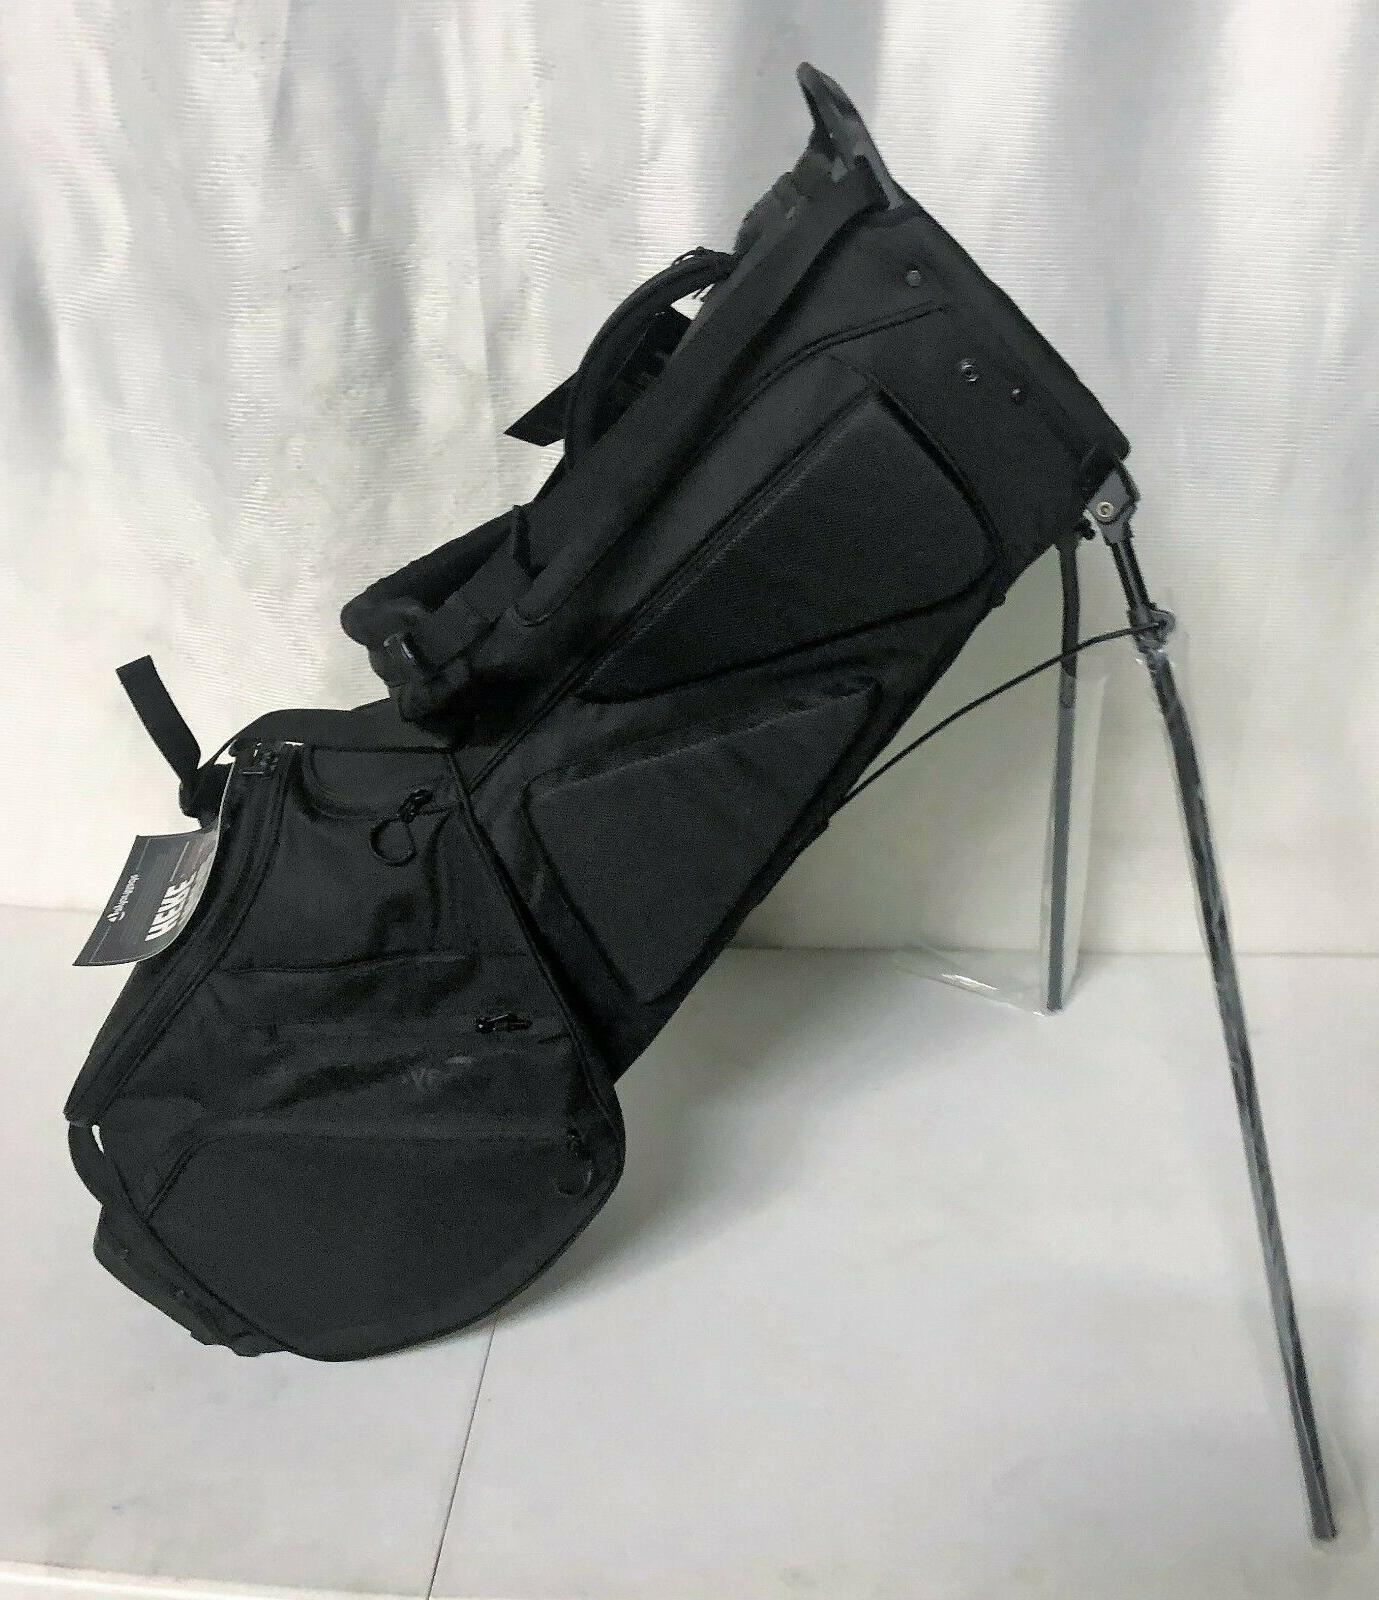 TaylorMade Stand - With